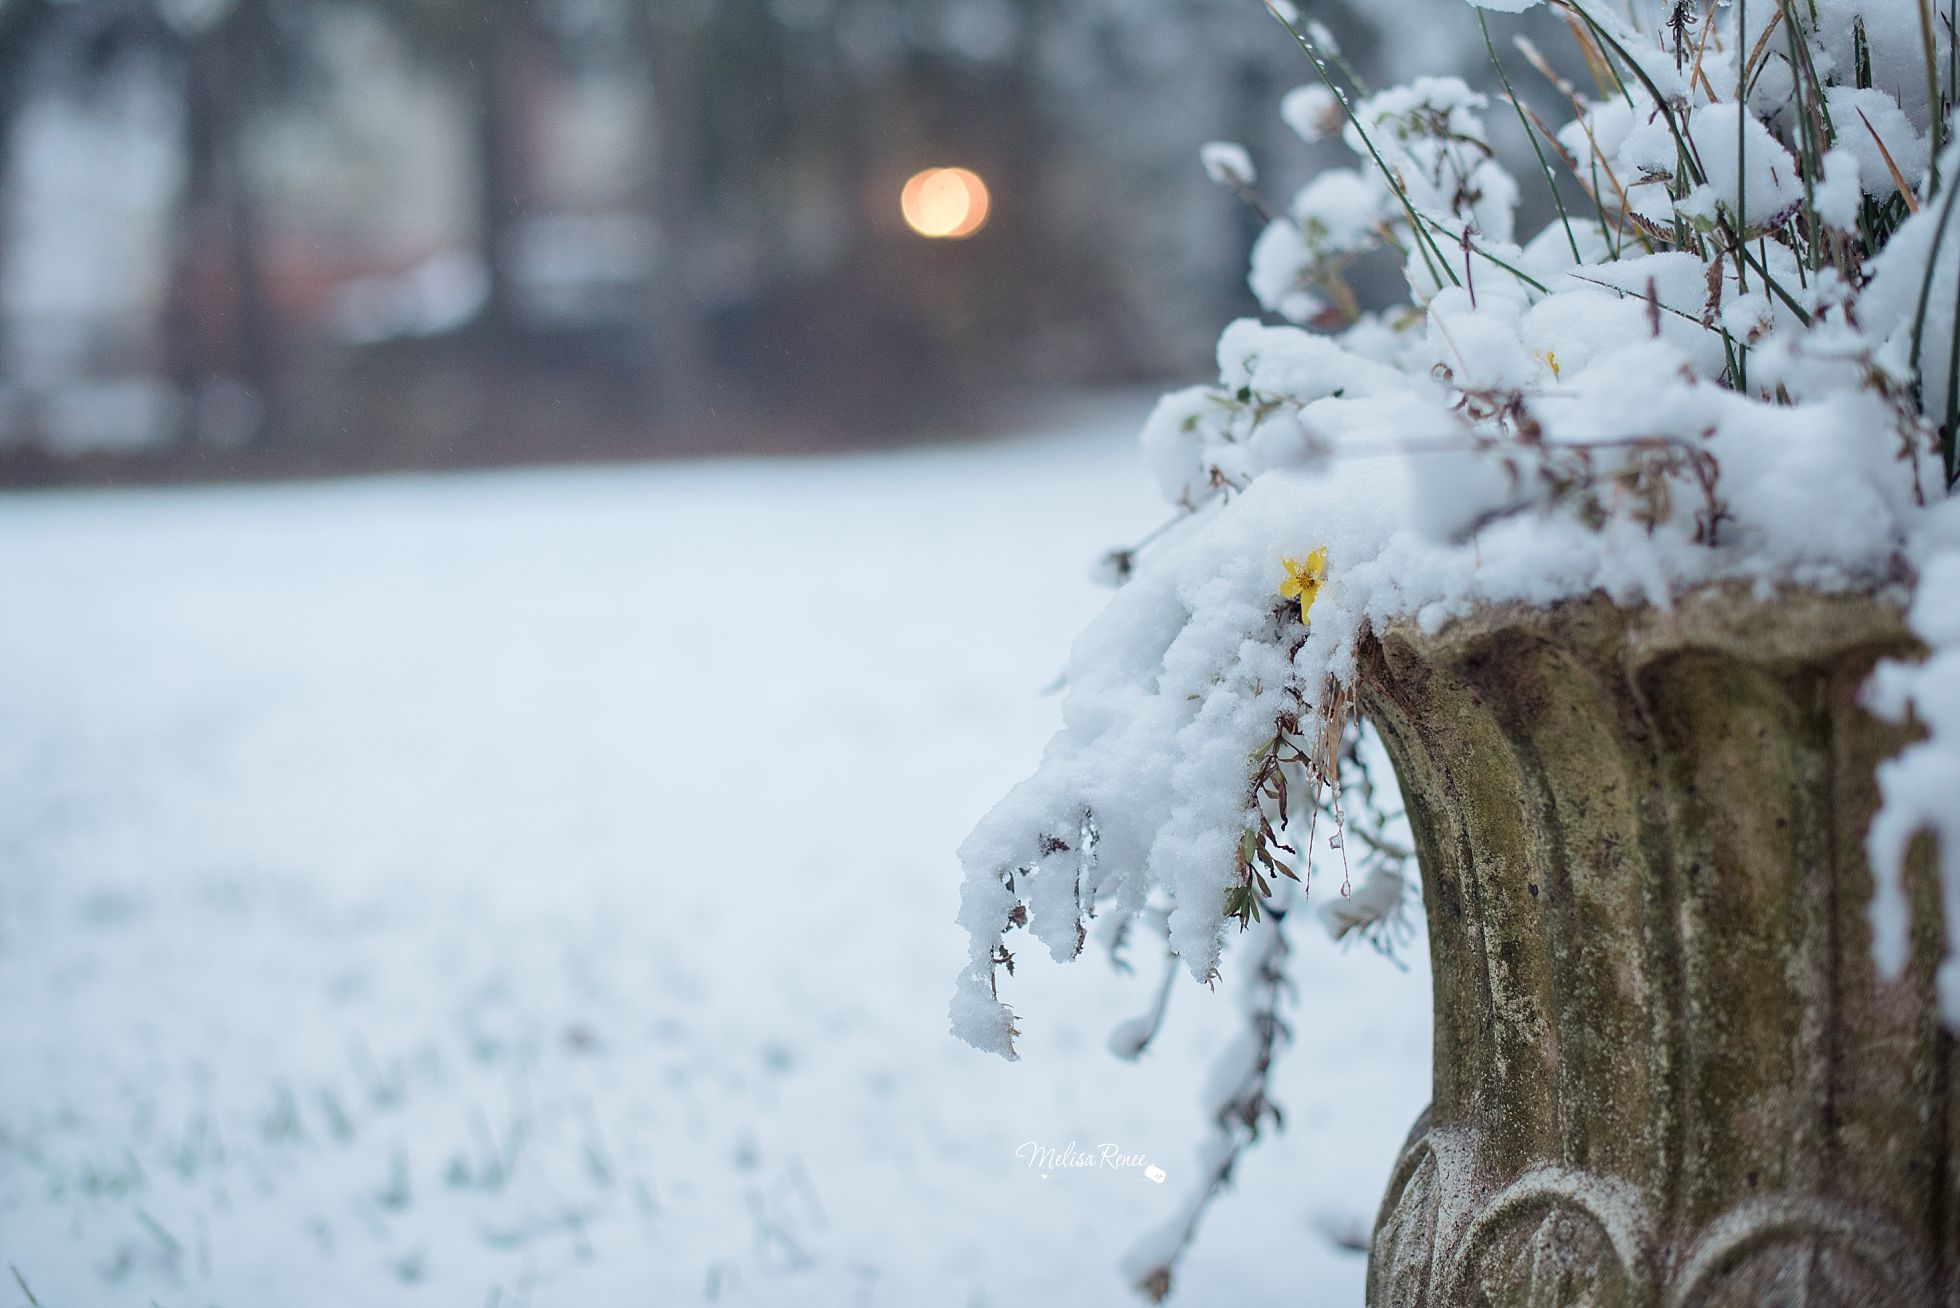 melisa renee photograpy, snowy day, yellow flower,